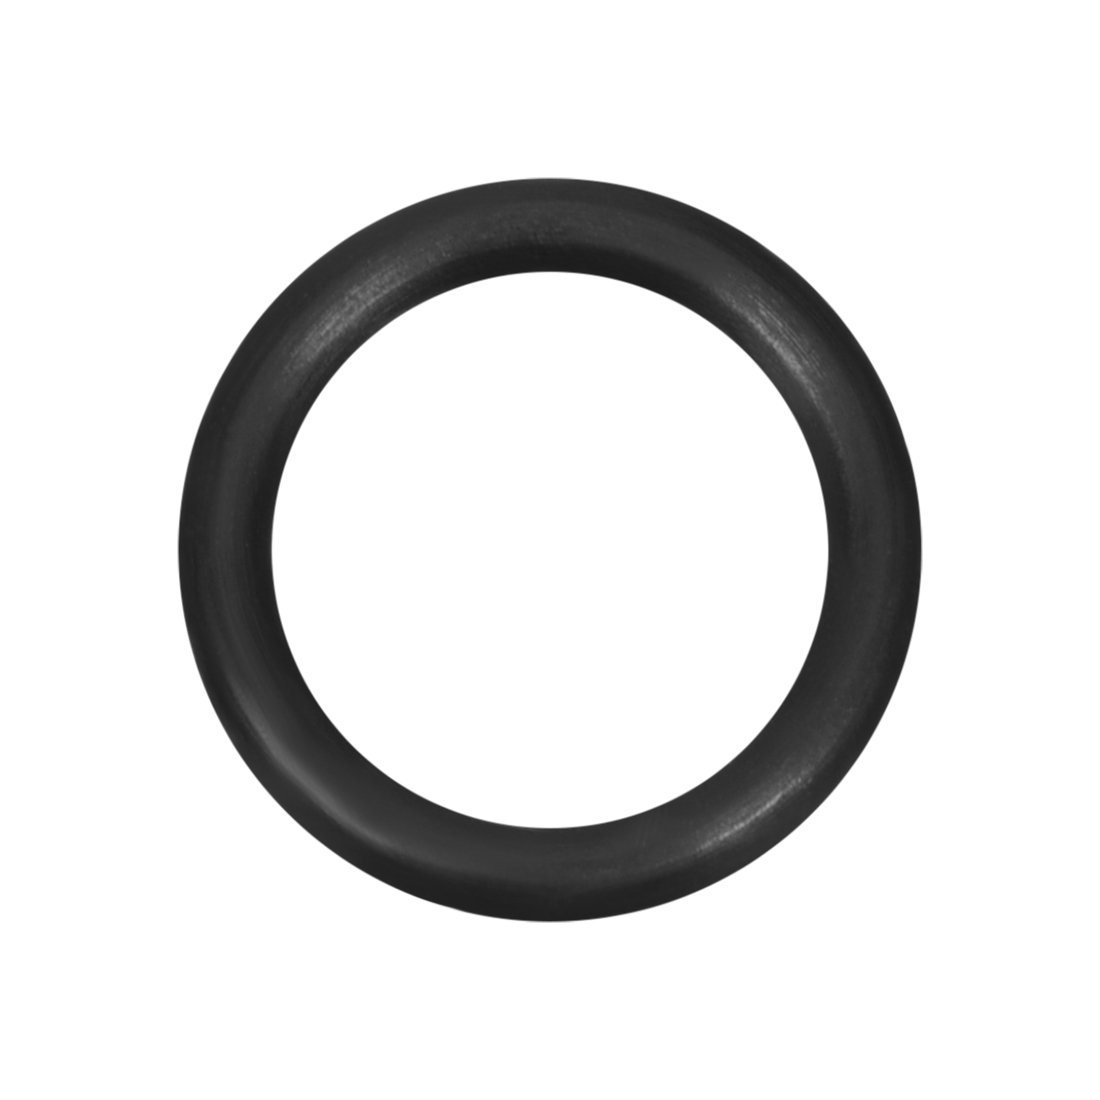 sourcing map O-Rings Nitrile Rubber Pack of 50 9mm OD 5mm Inner Diameter 2mm Width Round Seal Gasket